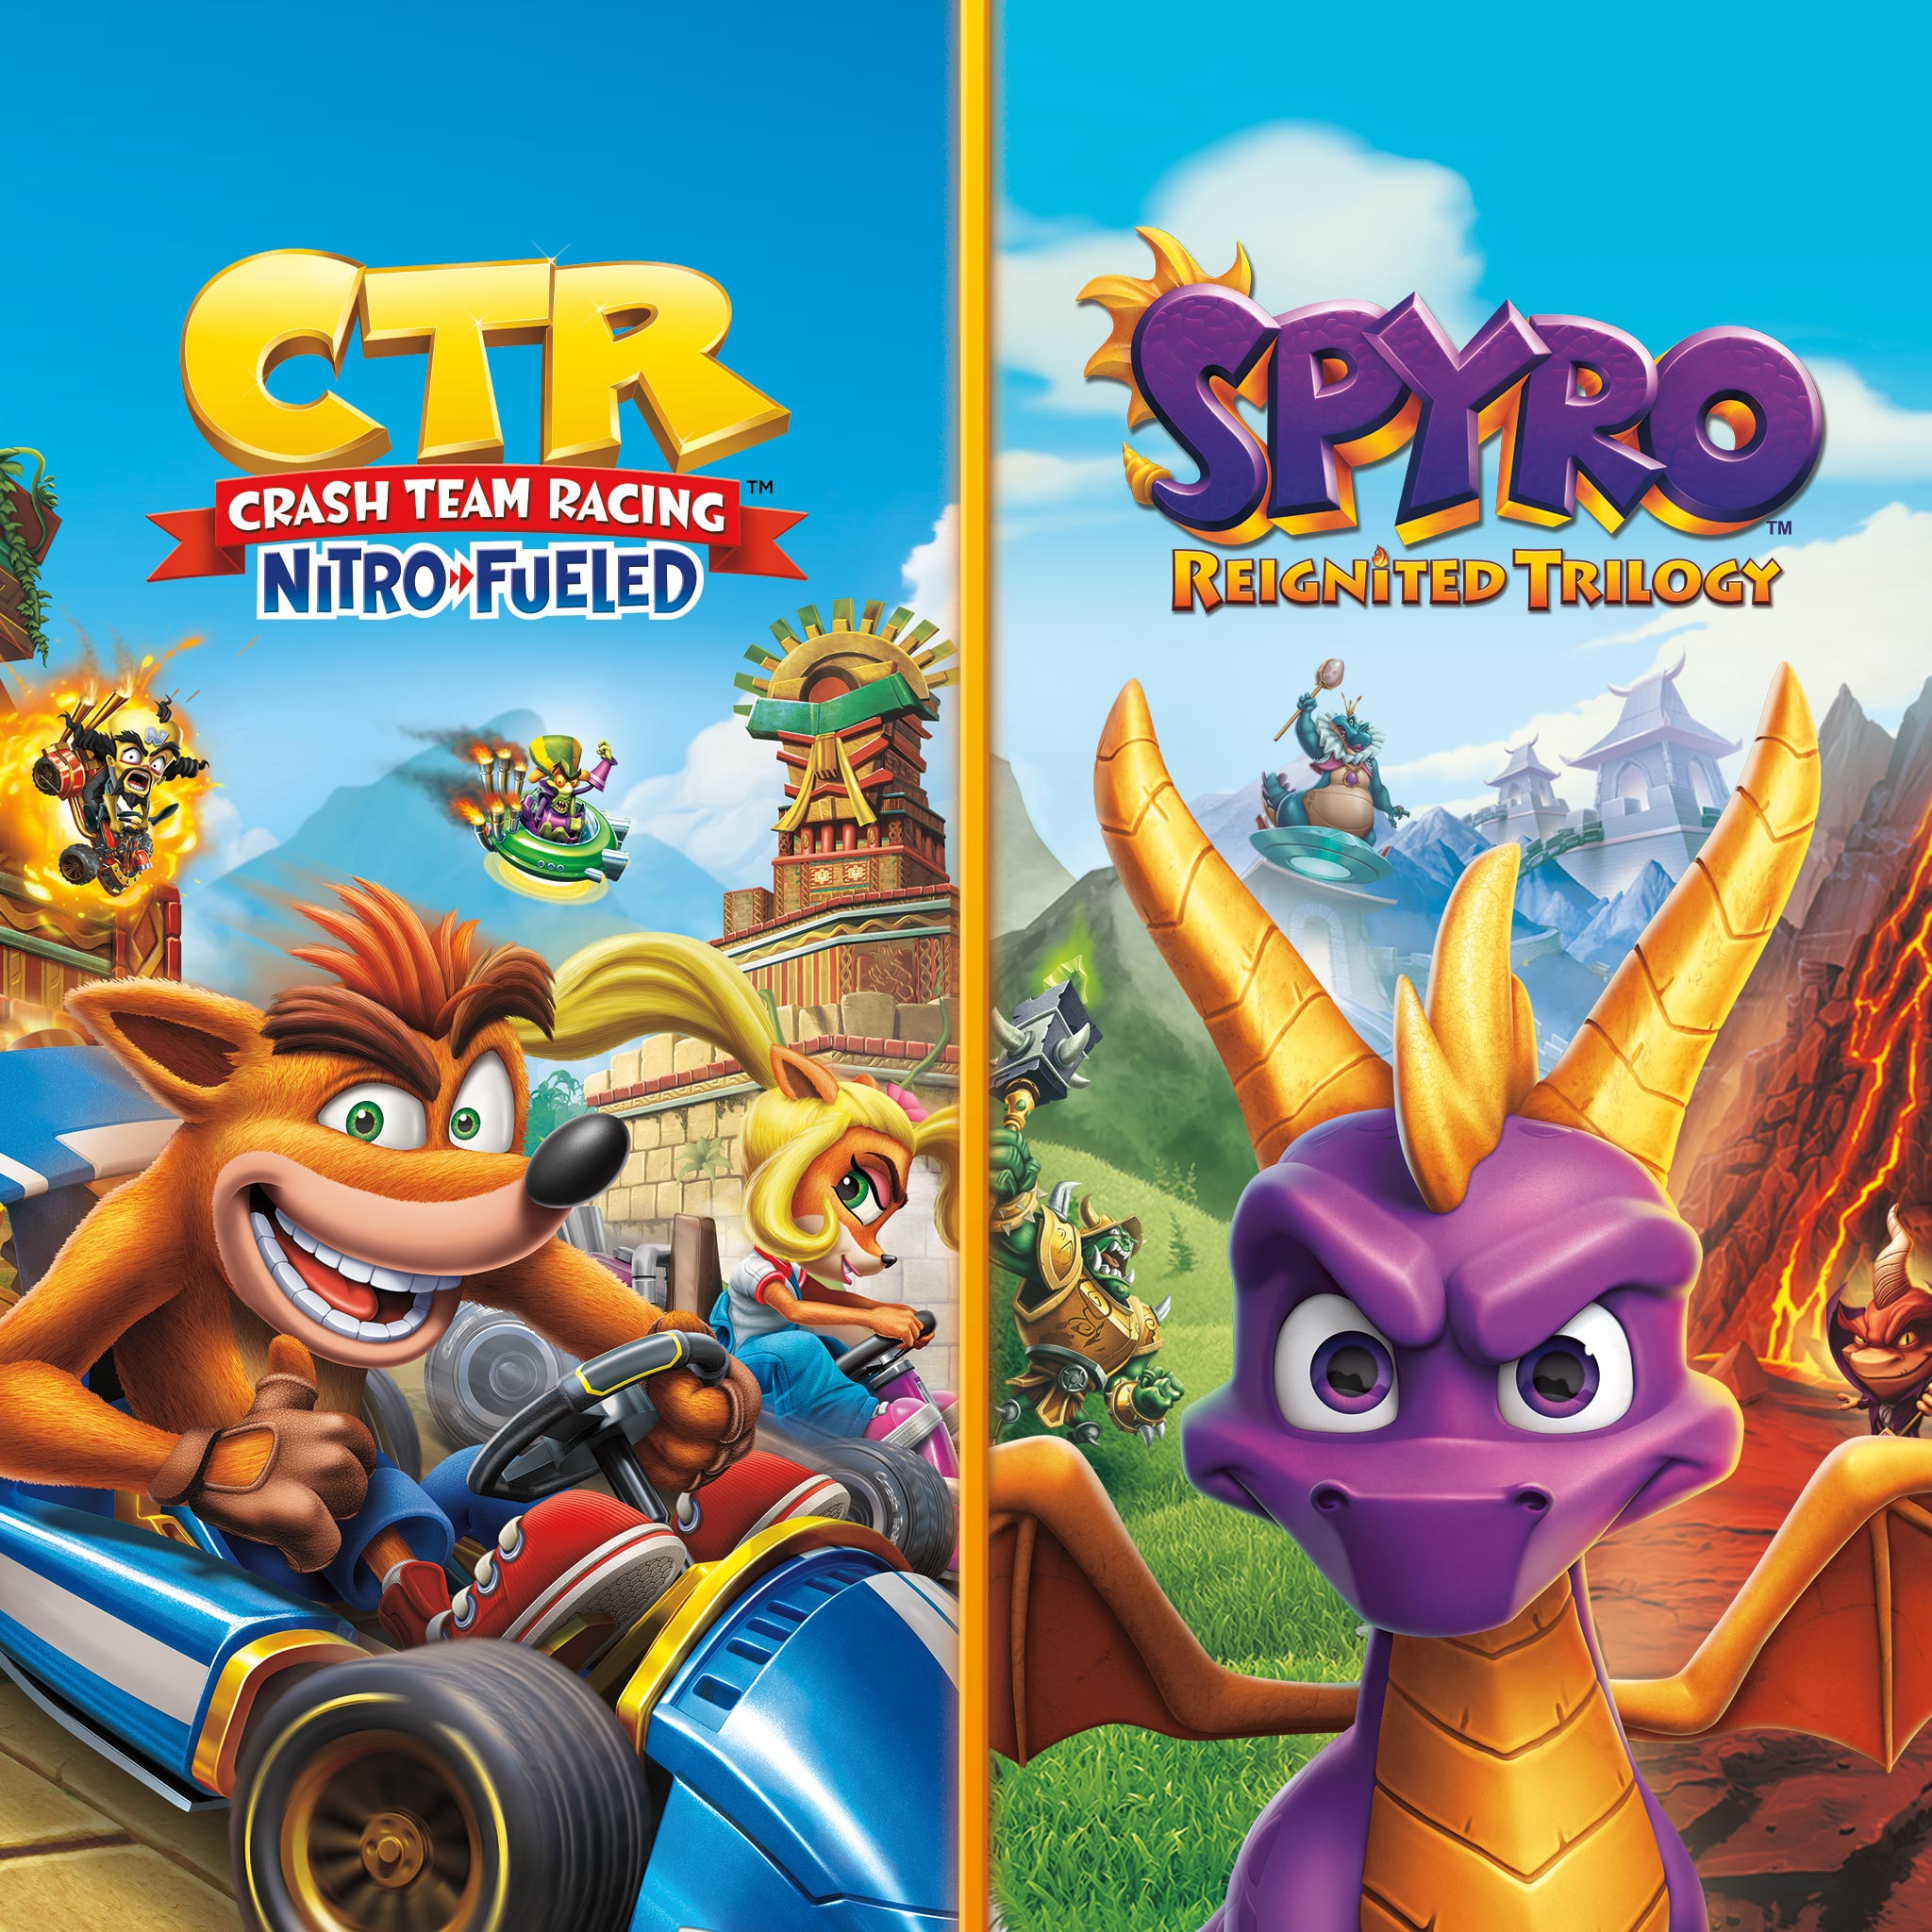 Crash™ Team Racing Nitro-Fueled + Spyro™ Game Bundle